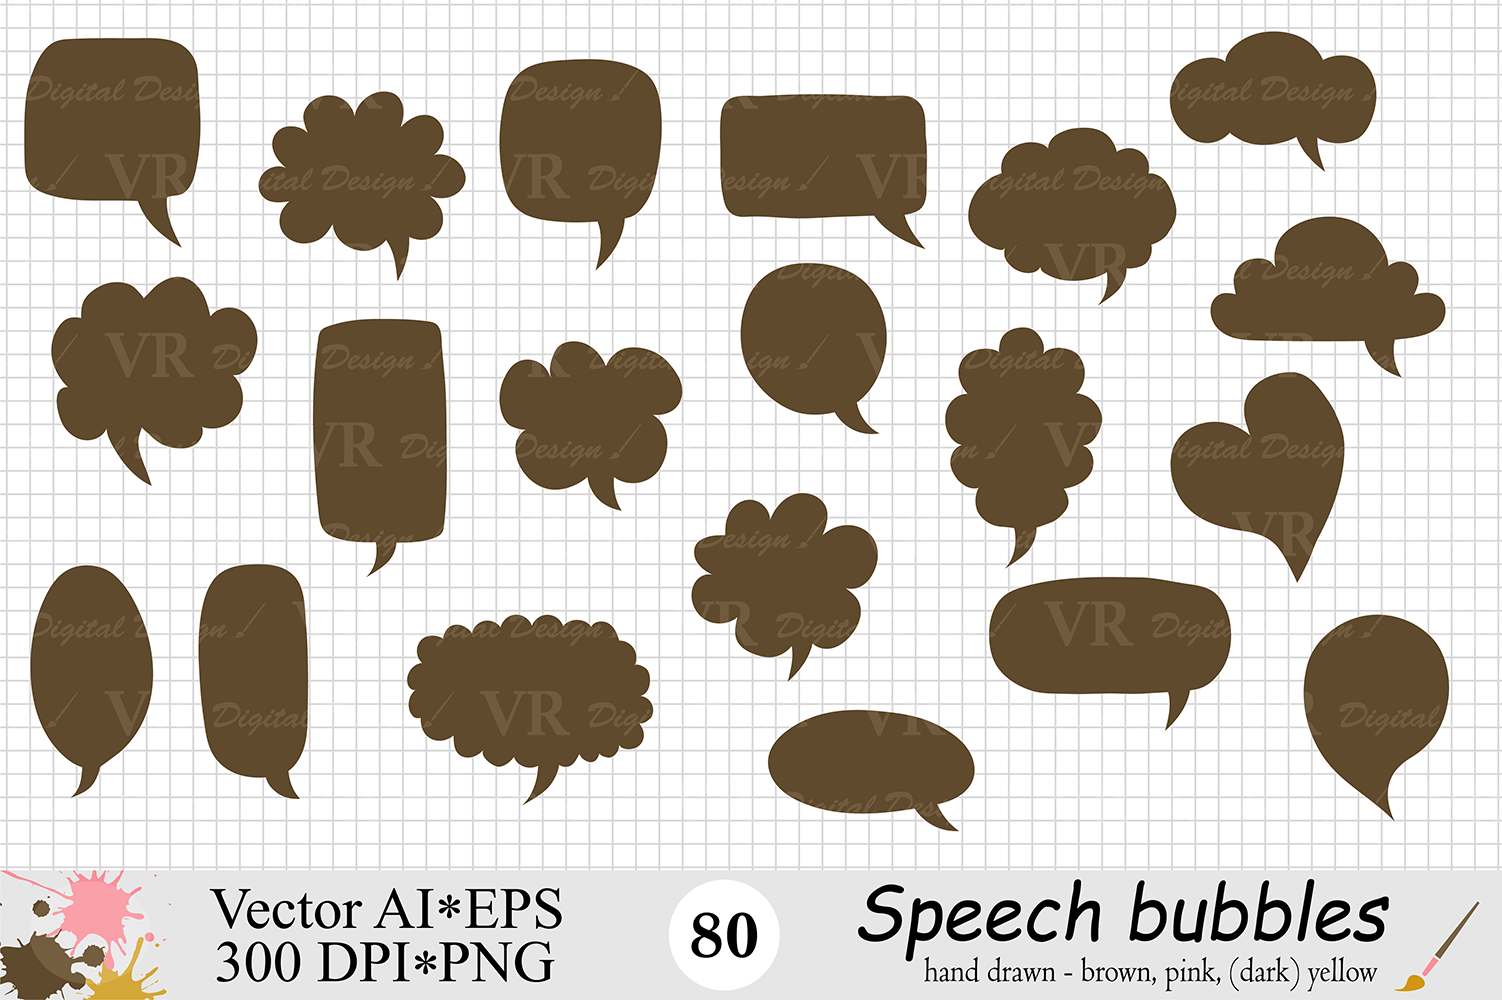 Speech Bubbles Clipart / Chat Bubbles / Hand drawn Text bubbles / Brown, Pink, Yellow - Vector example image 3